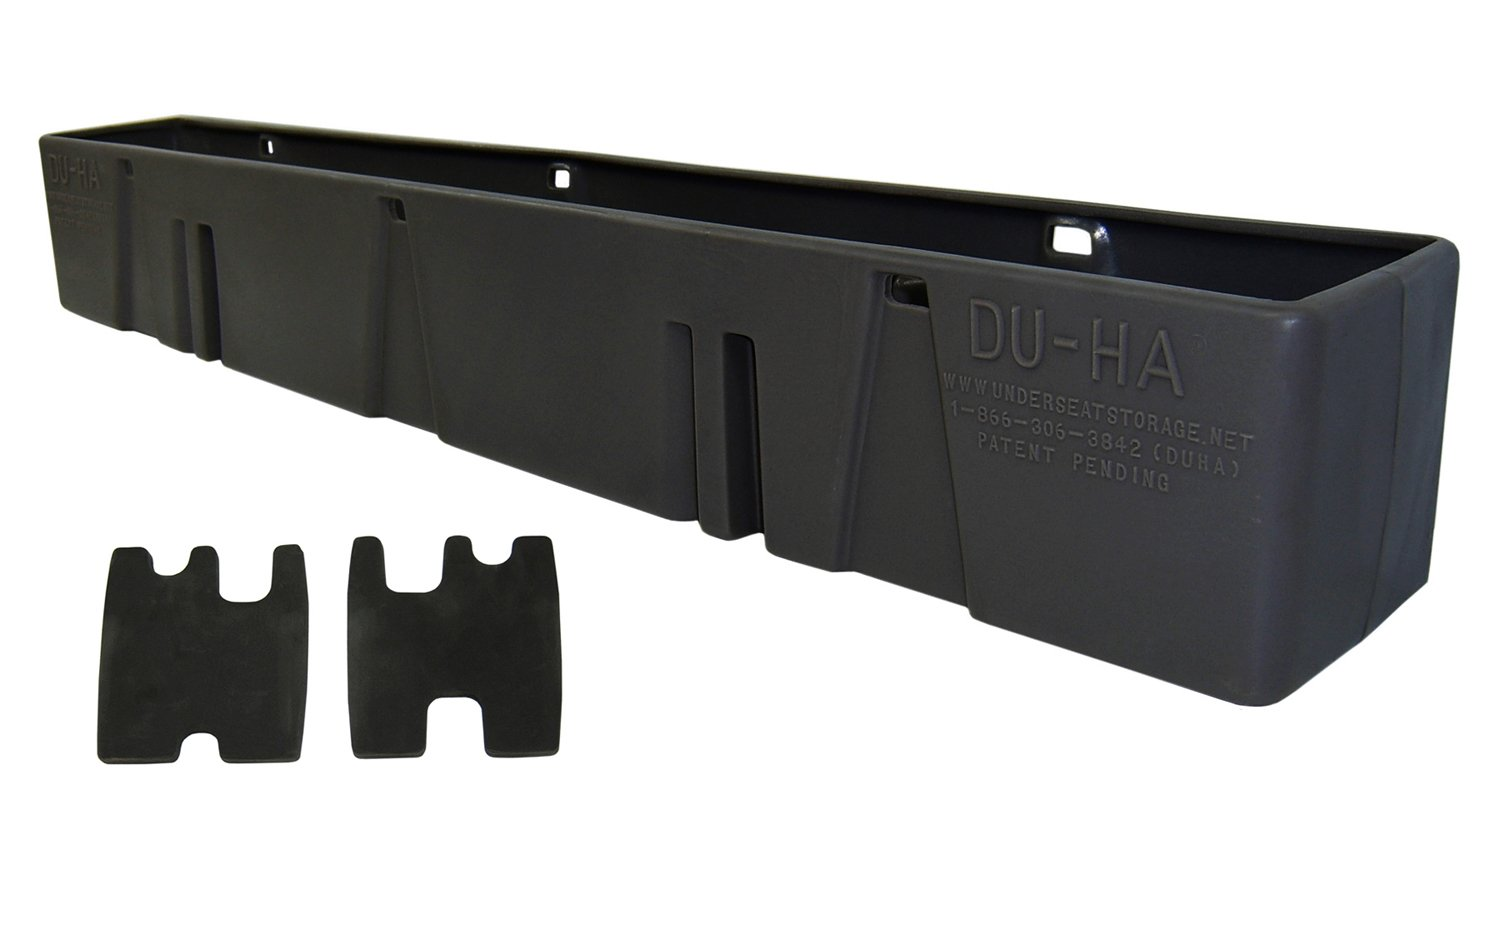 DU-HA 10059 Chevrolet//GMC Behind Seat Storage Console Organizer Light Gray